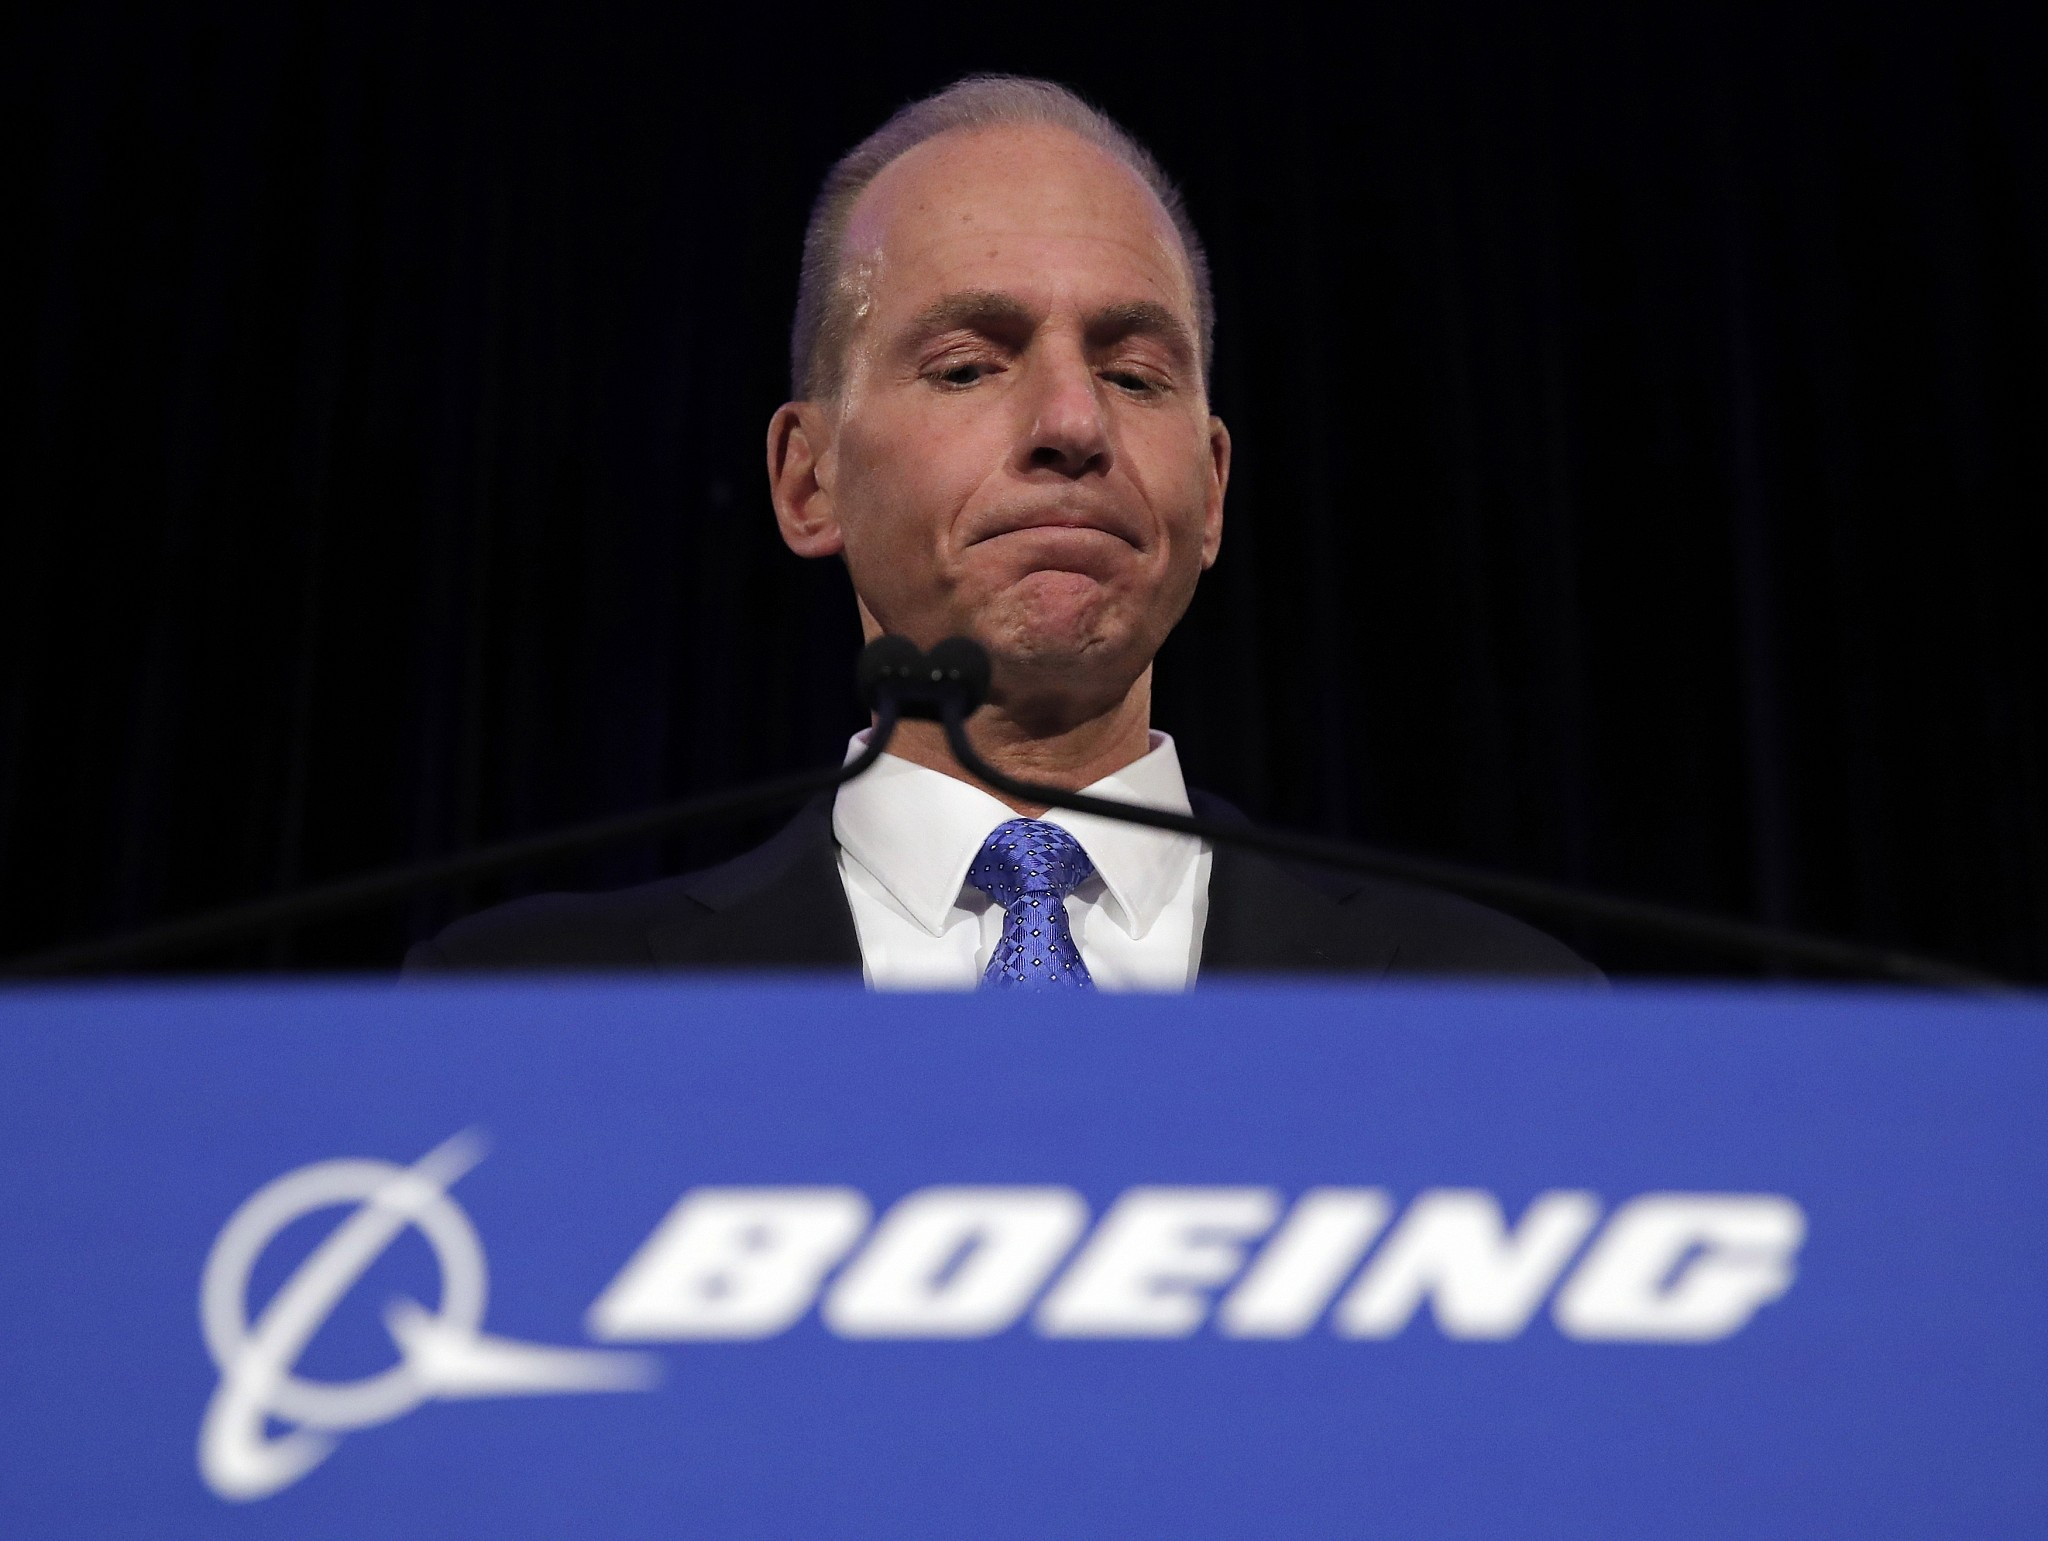 Boeing executives apologise over deadly air crashes